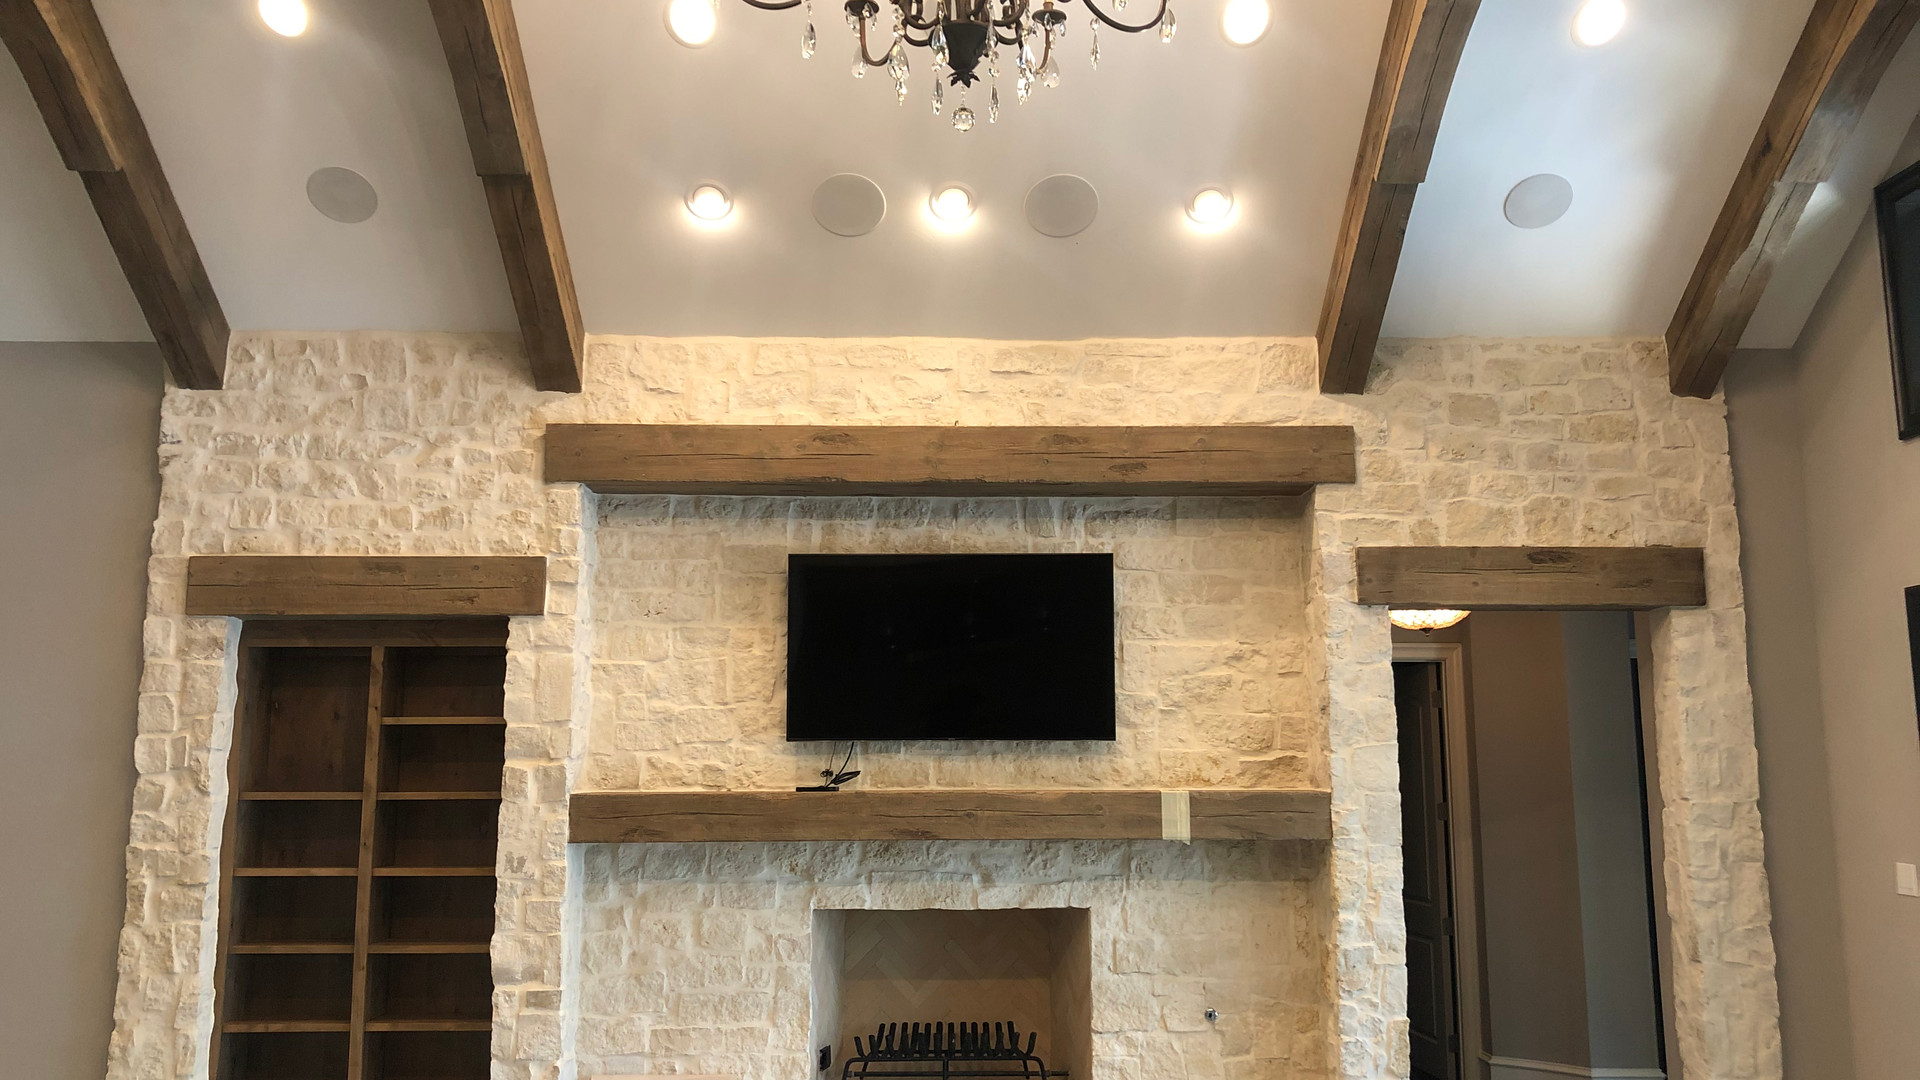 Fireplace and built-ins are accented by heavy timer beamwork